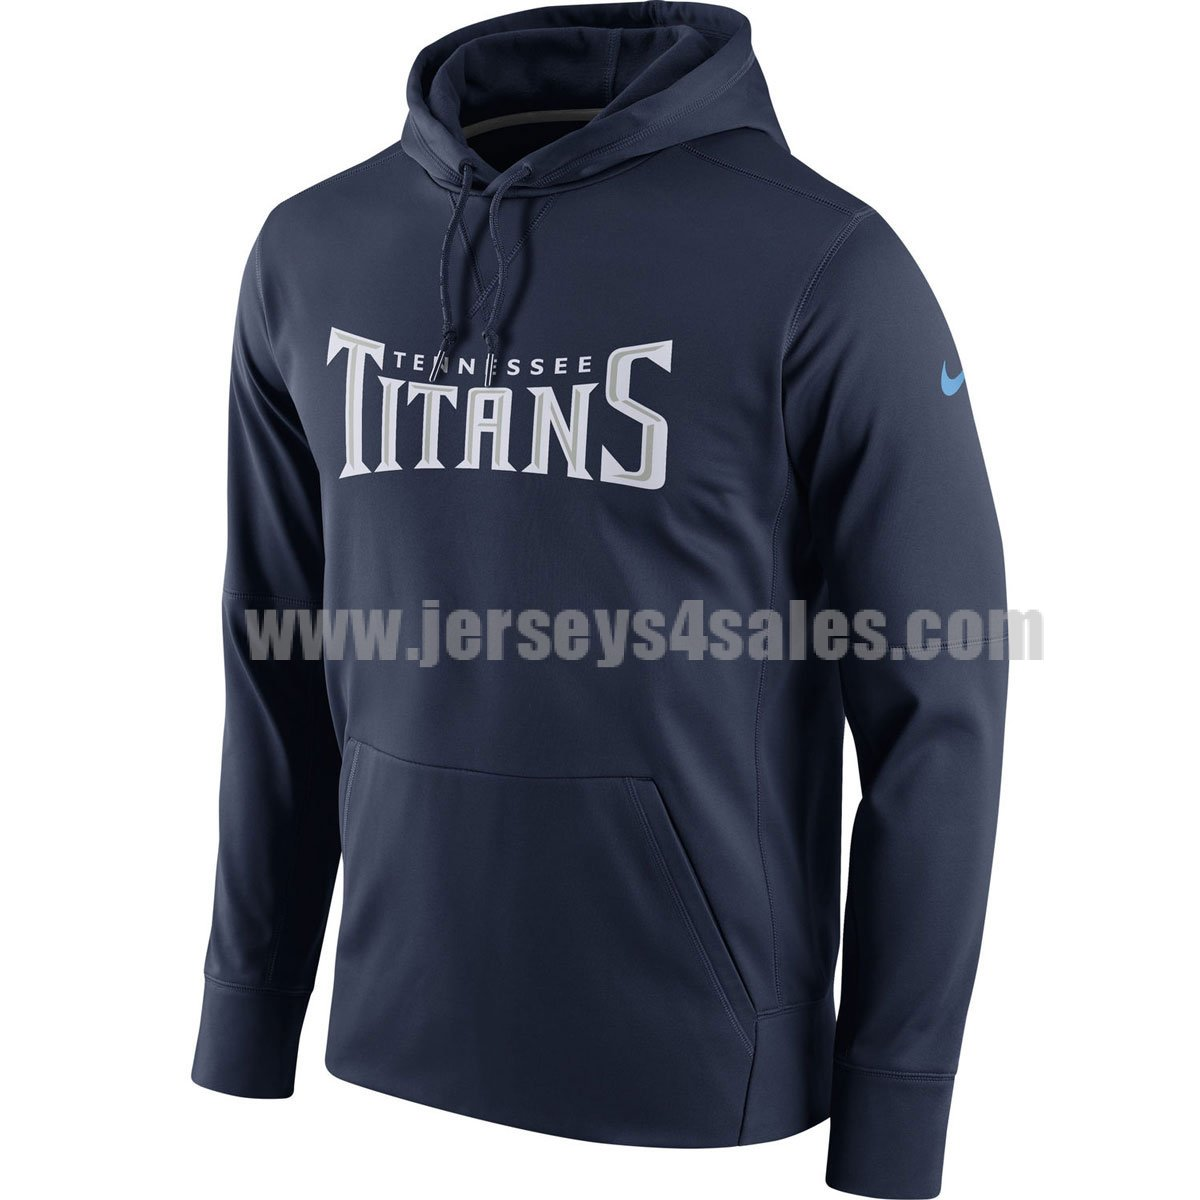 Men's Tennessee Titans Navy Blue Nike Circuit Wordmark Essential Performance NFL Pullover Hoodie